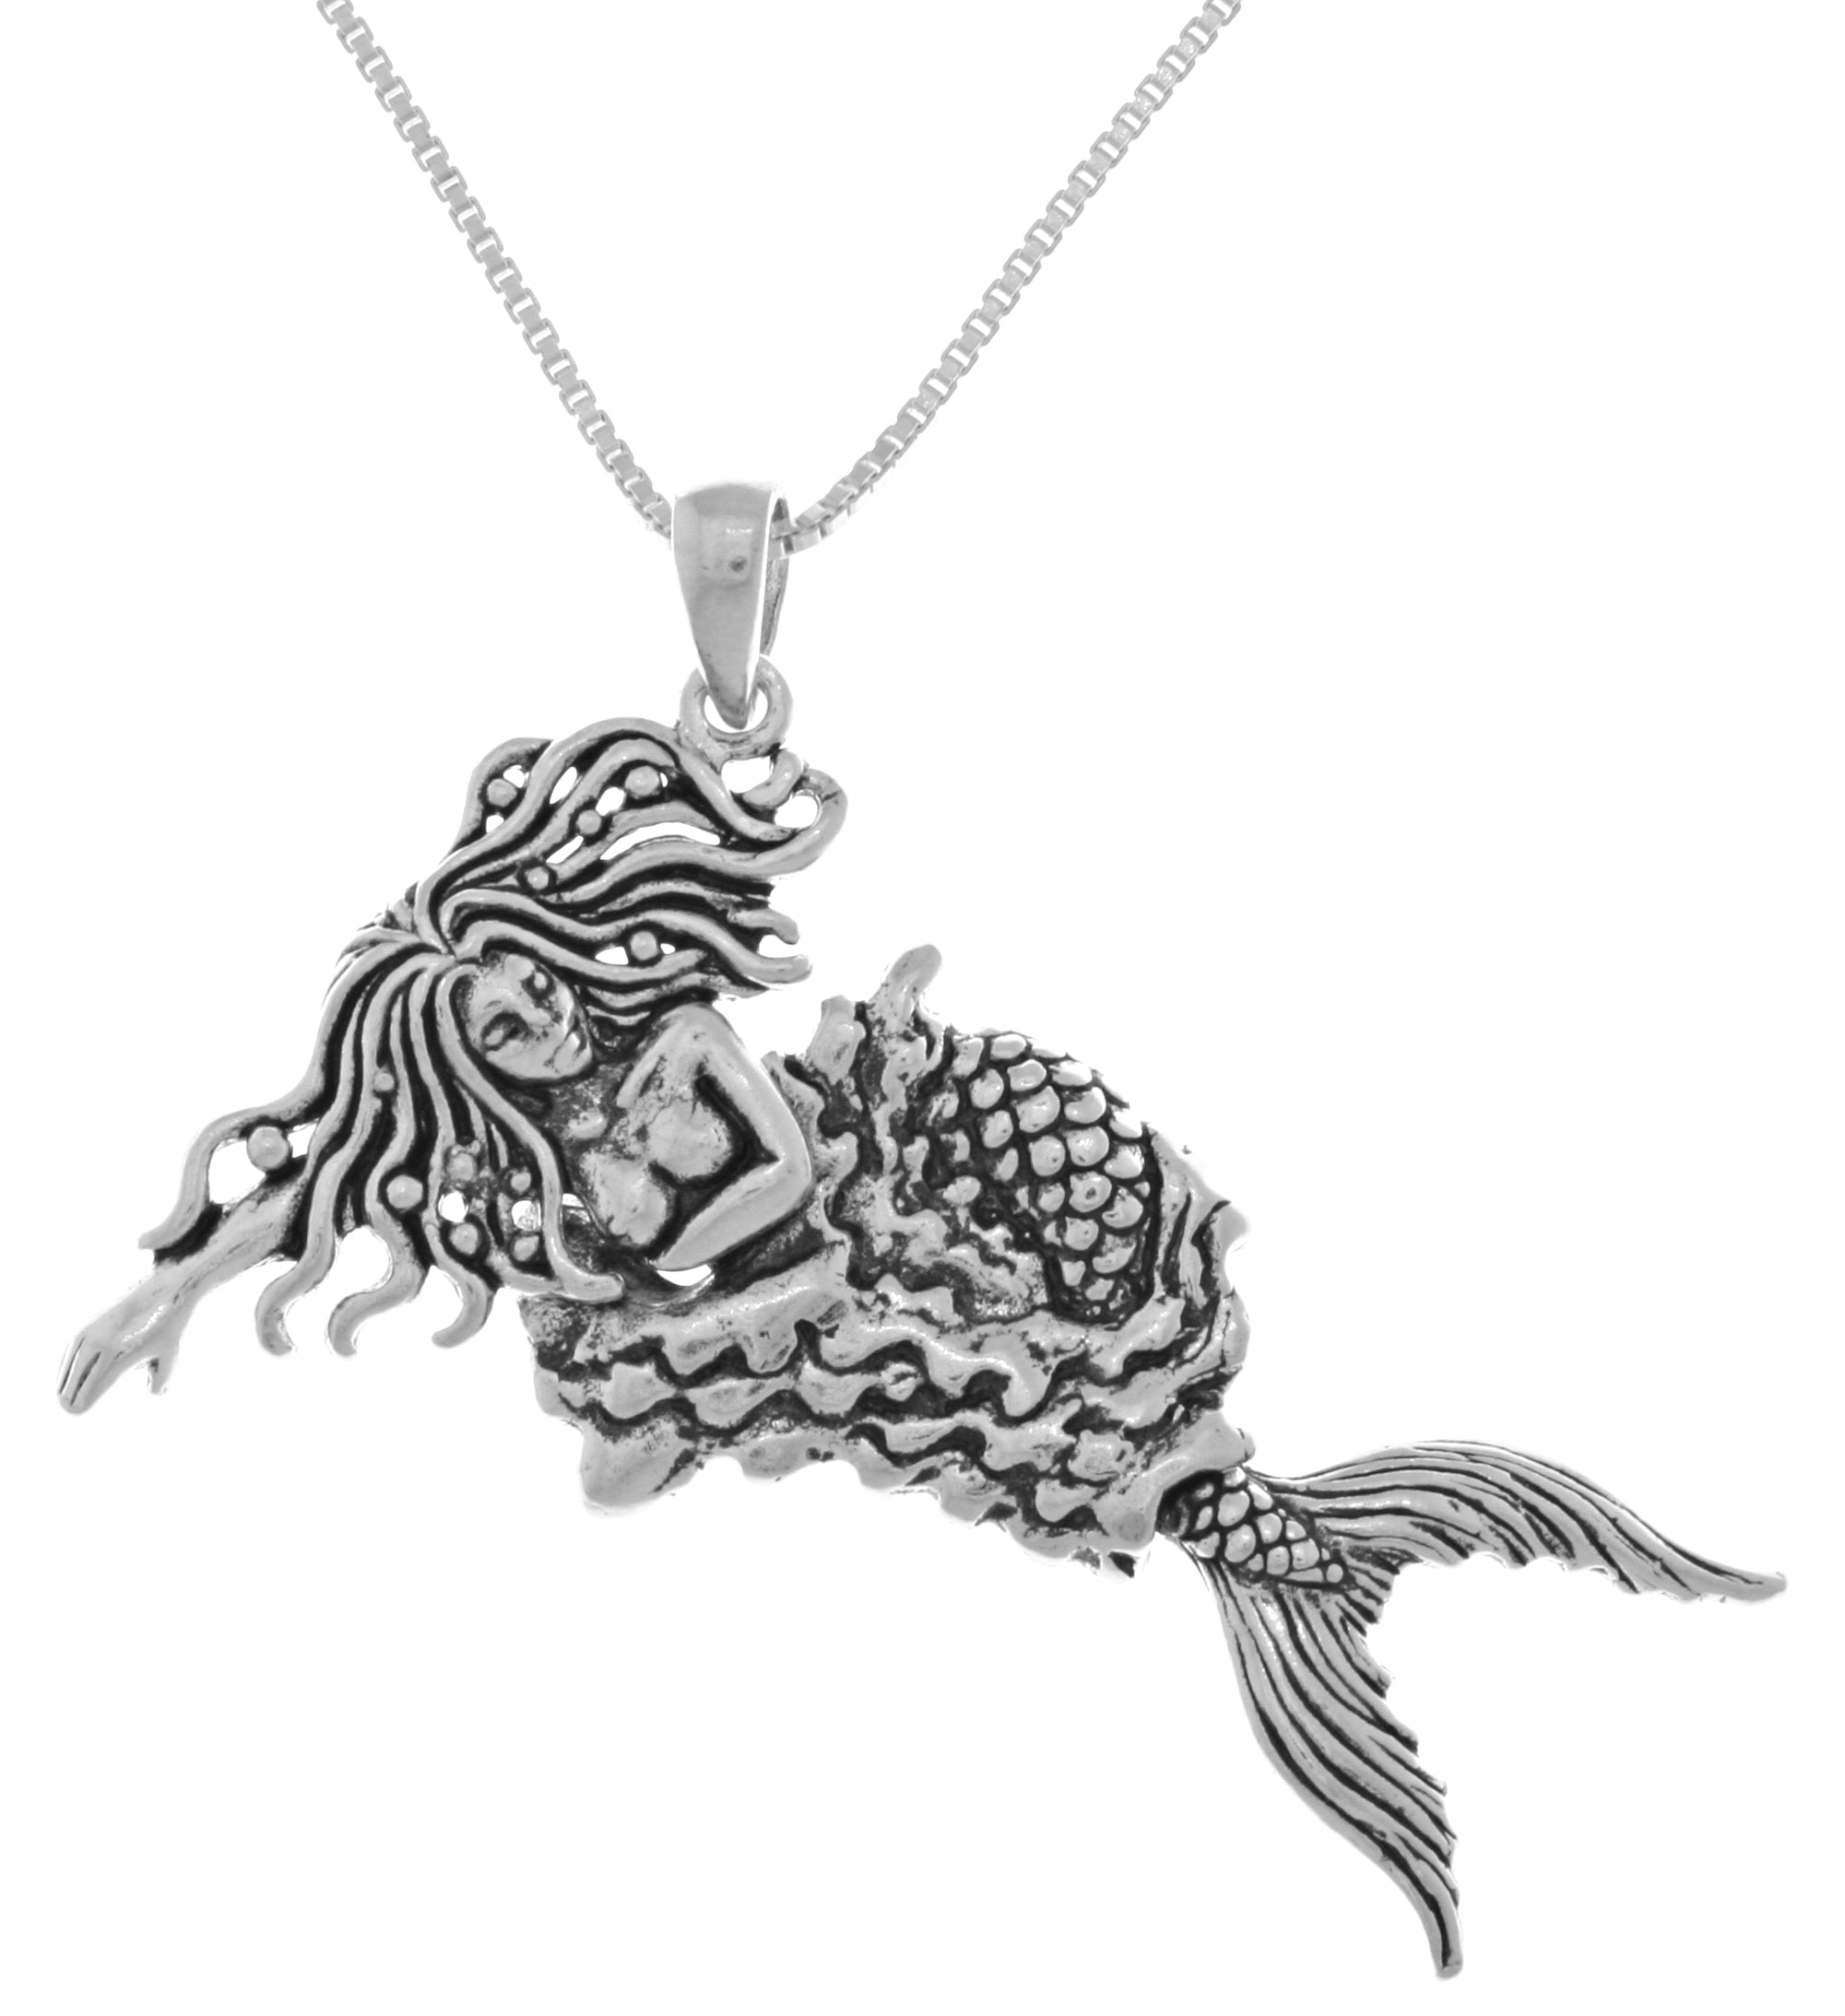 Jewelry Trends Sterling Silver Moveable Swimming Mermaid Pendant on 18 Inch Box Chain Necklace